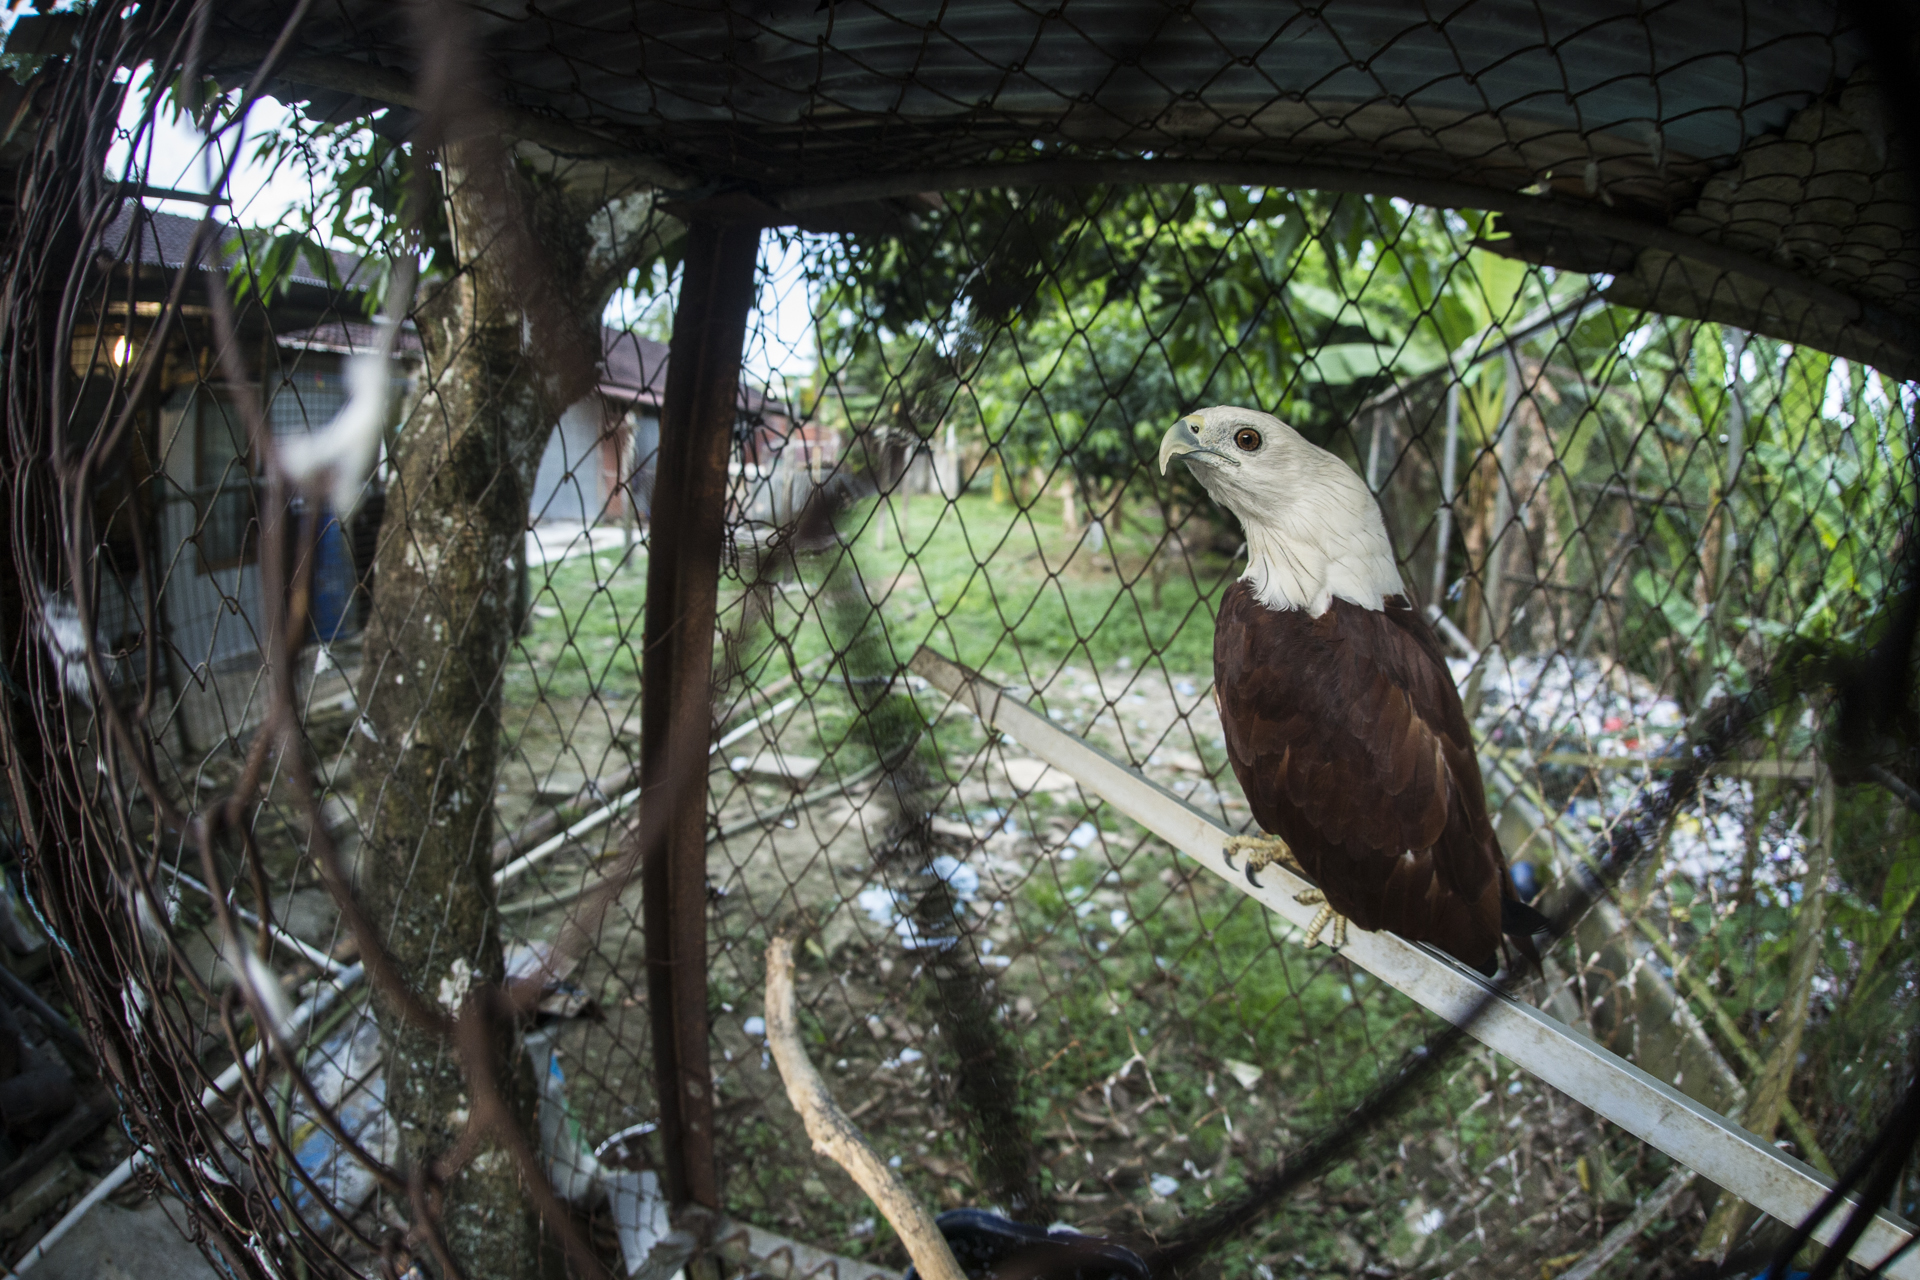 A Brahminy kite sits almost forgotten in its tiny cage. This bird was bought from a market by a power plant worker & now sits at the back of his compound beside the rubbish pile.